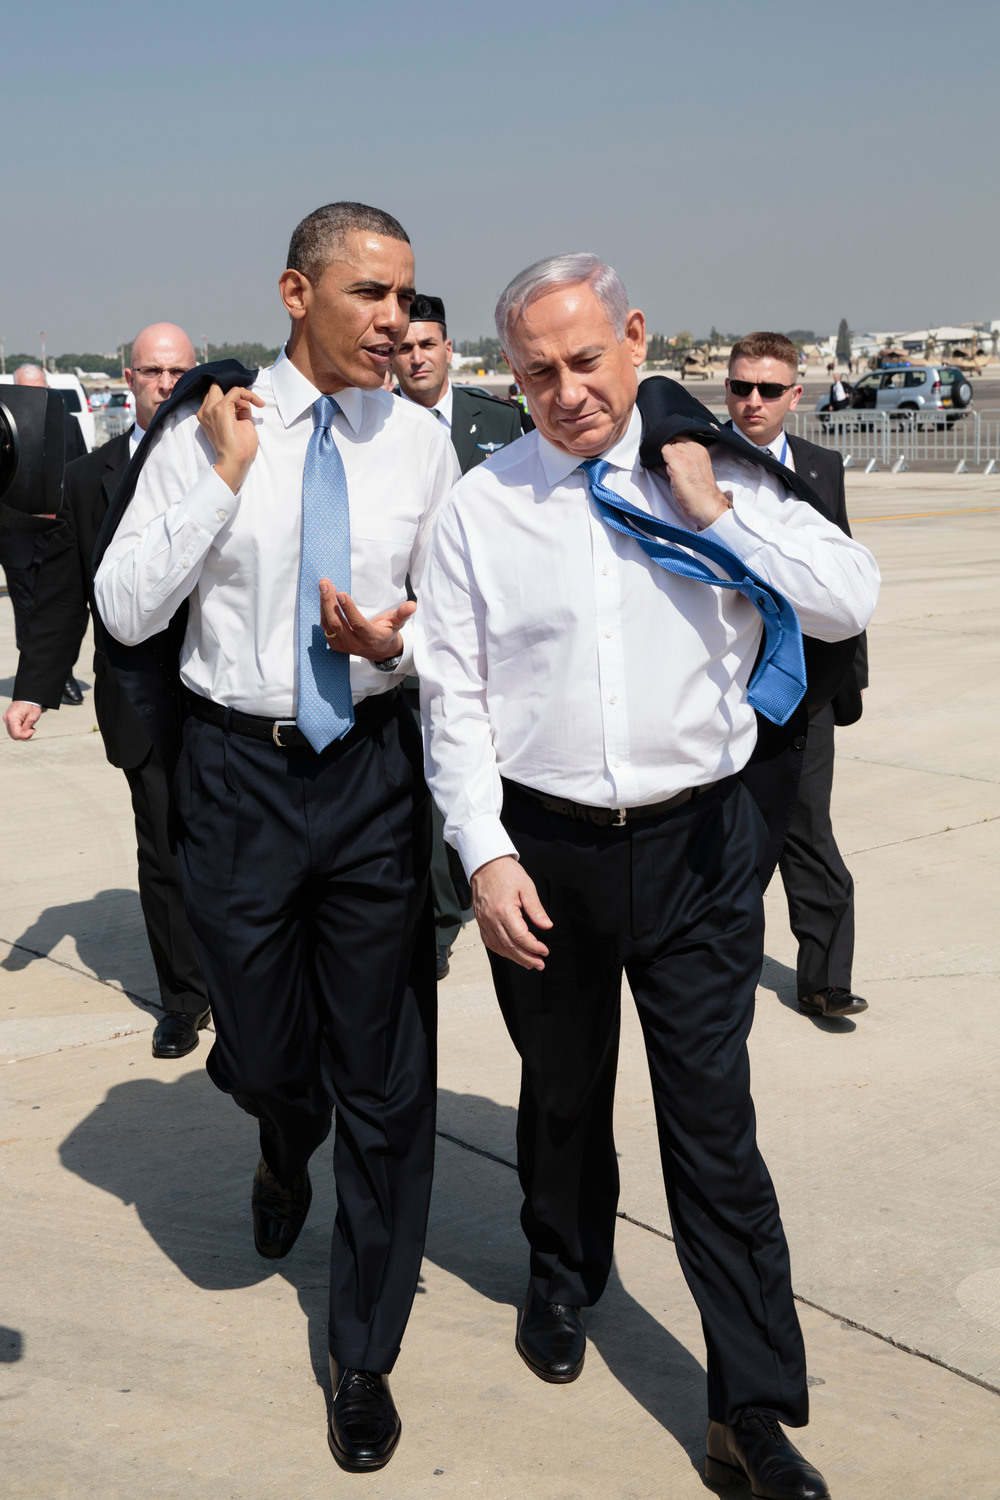 U.S. President Barack Obama and Israeli Prime Minister Benjamin Netanyahu (pictured together) will be meeting at the White House next week. Credit: Wikimedia Commons.